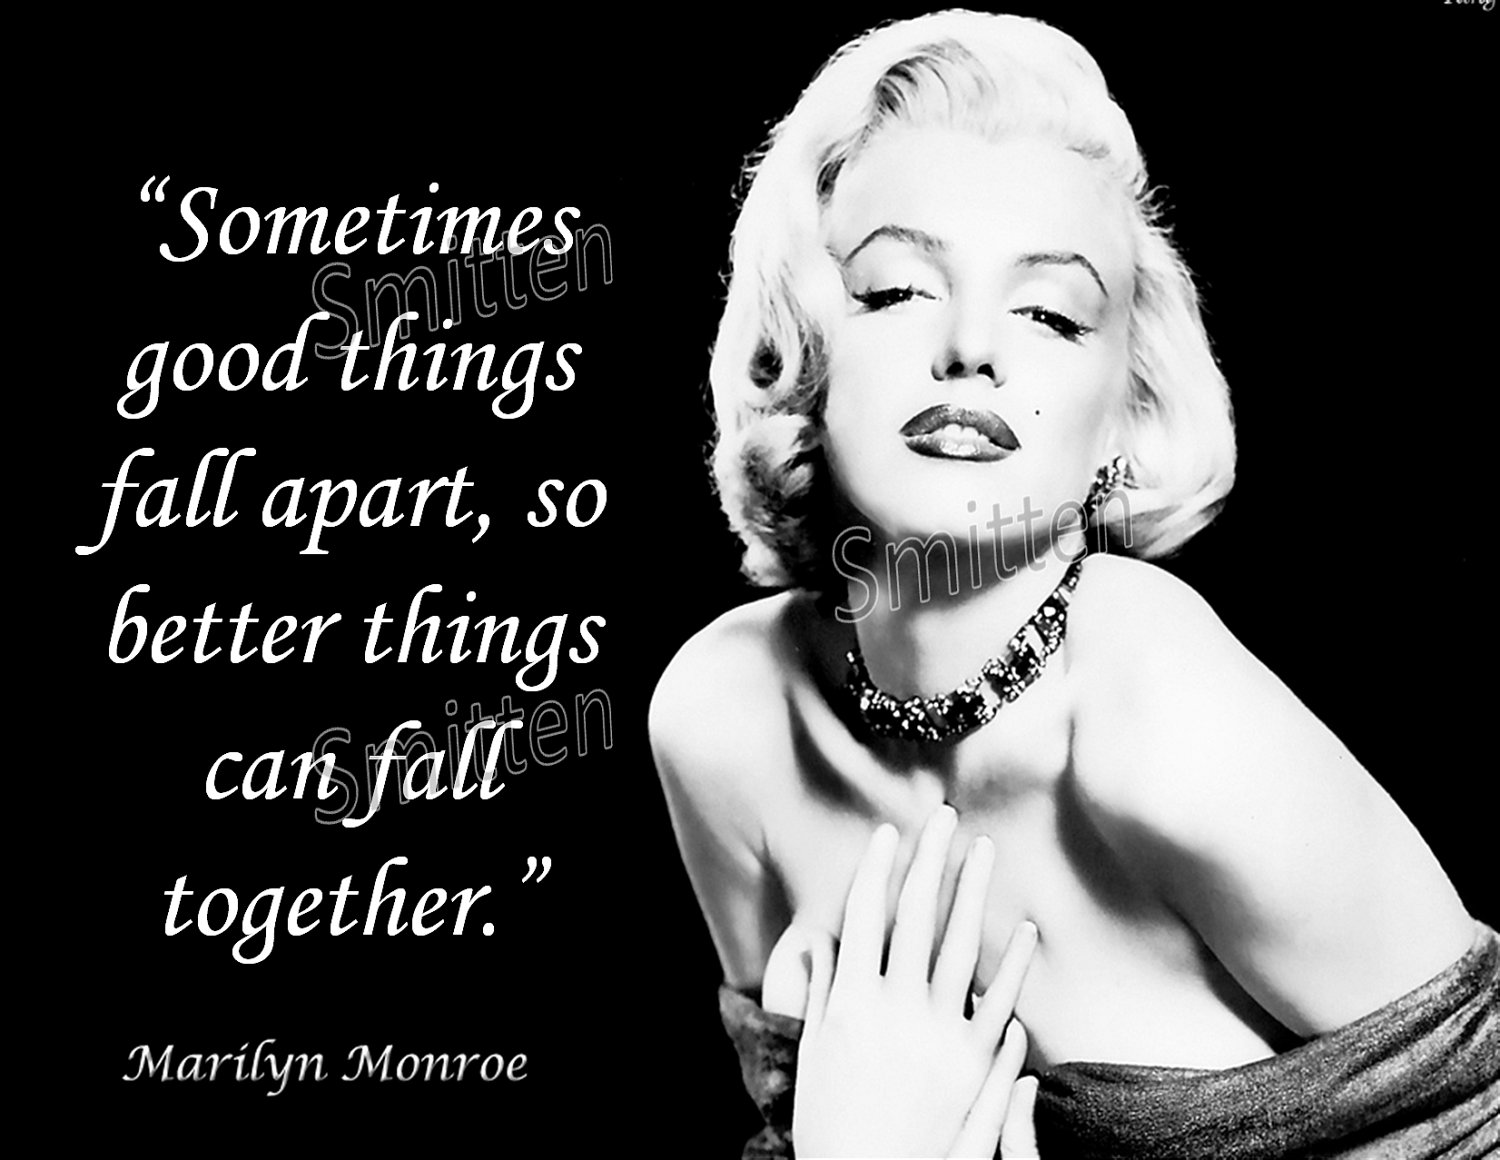 Marilyn monroe beauty and femininity are ageless quote ... |Marilyn Monroe Quotes And Sayings About Love